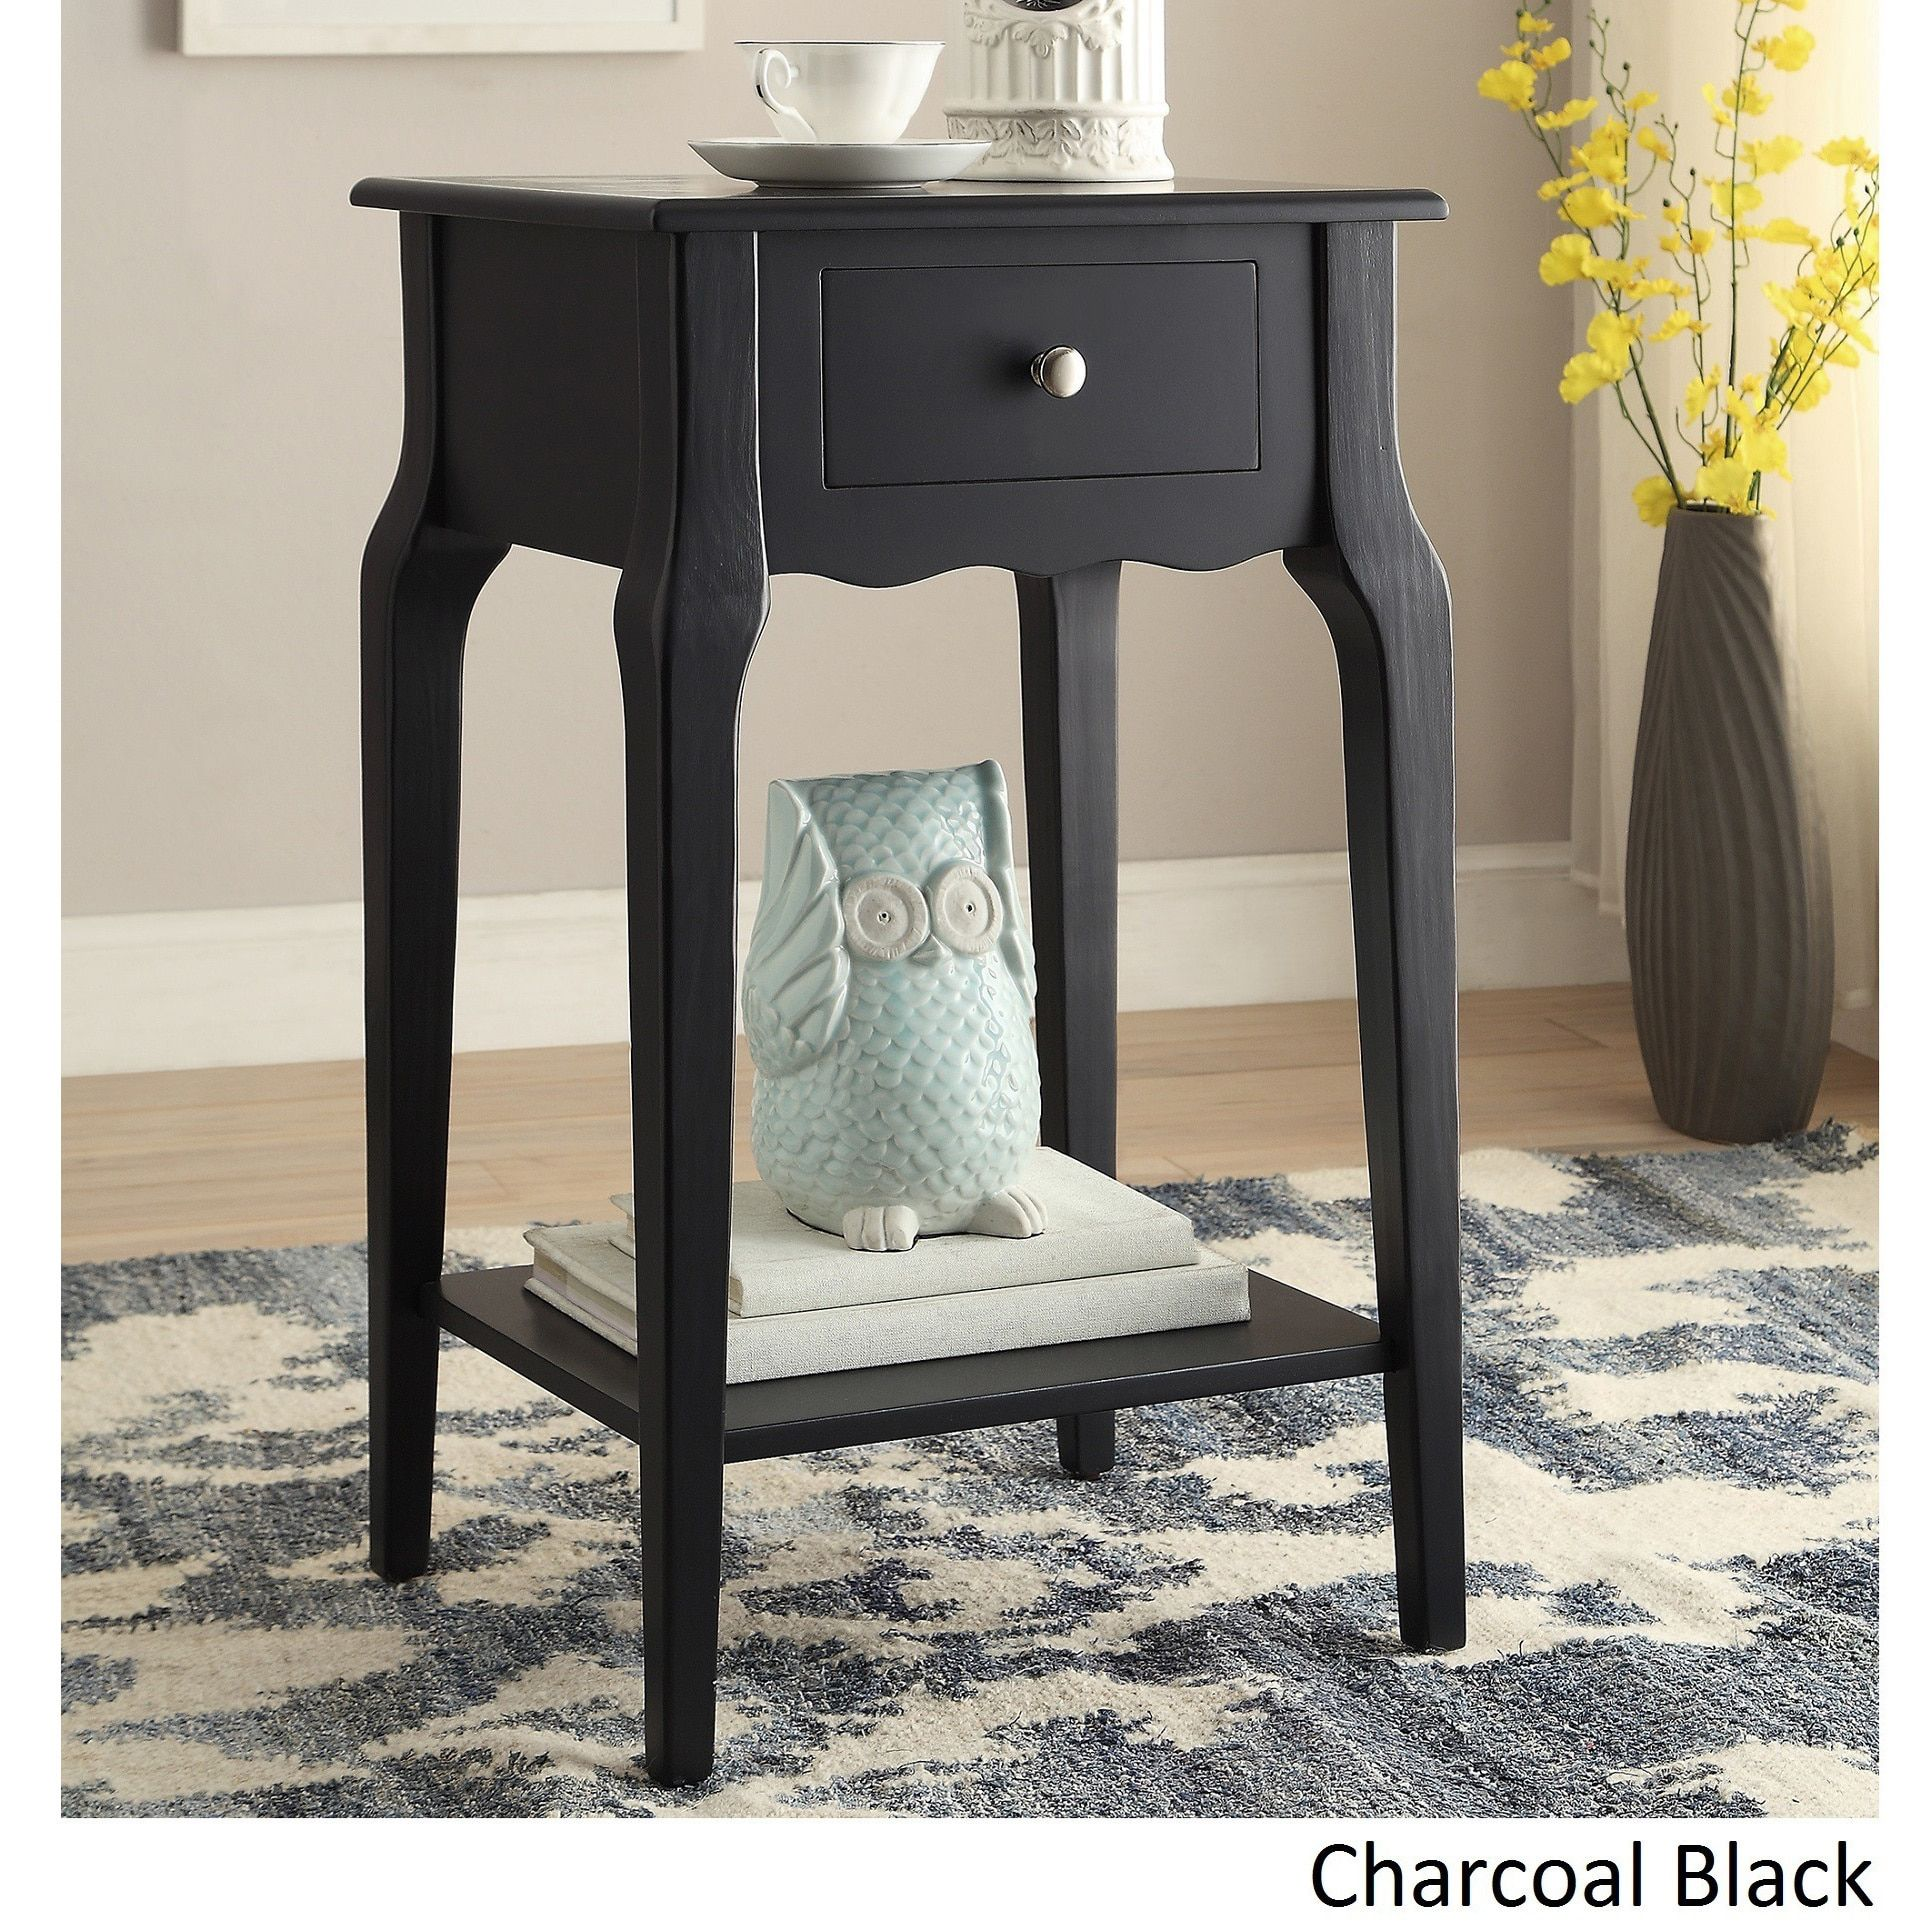 daniella drawer wood storage accent end table inspire bold distressed grey quatrefoil with mirror midnight black large outdoor patio umbrella pottery barn round glass coffee